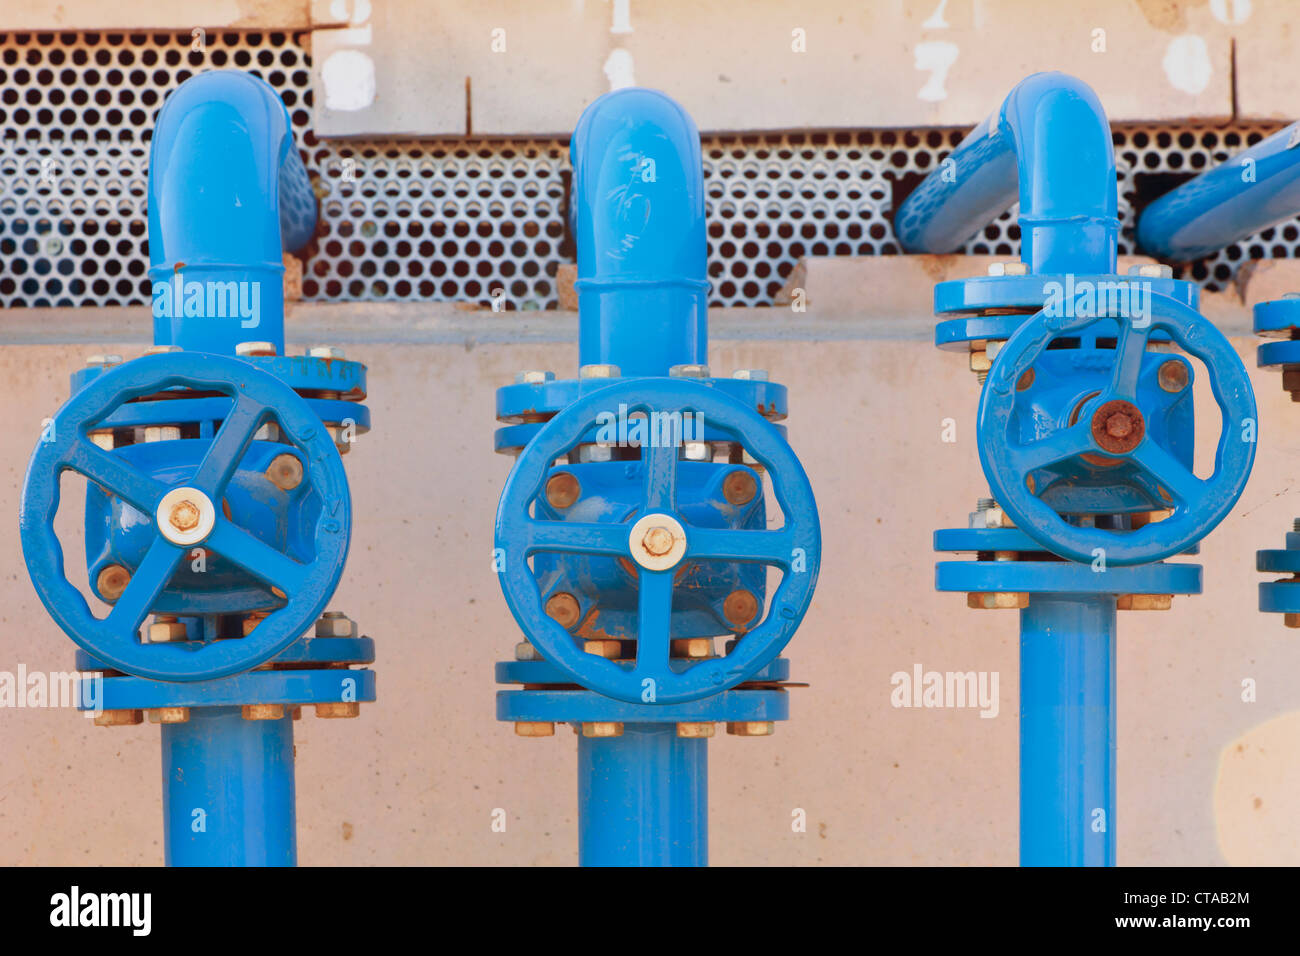 Valves used to control water and chemical flow in hot houses, Huelva Province, Andalusia, southern Spain. - Stock Image